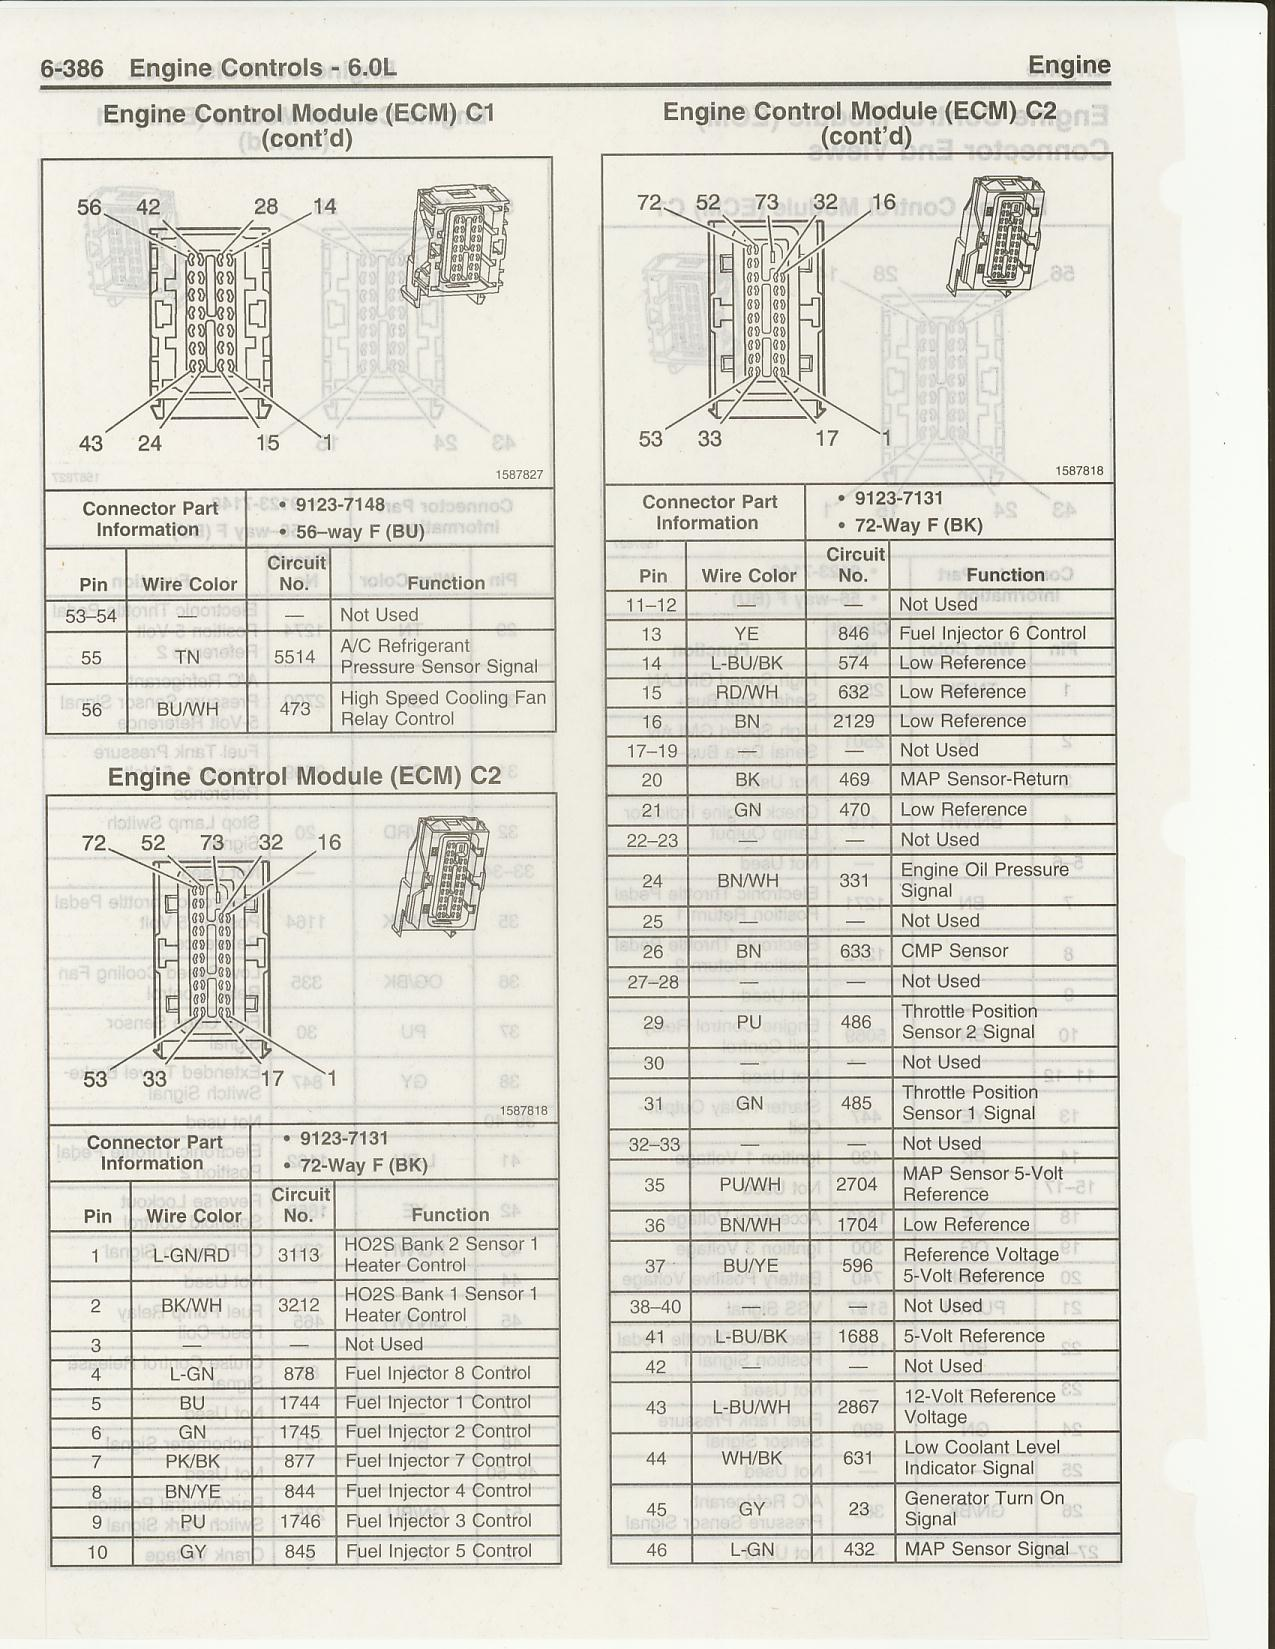 2004 Ram Engine Diagram Starting Know About Wiring 2003 Dodge O2 Sensor How To Make A Stand Alone Harness For My Ls2 Intrepid 2500